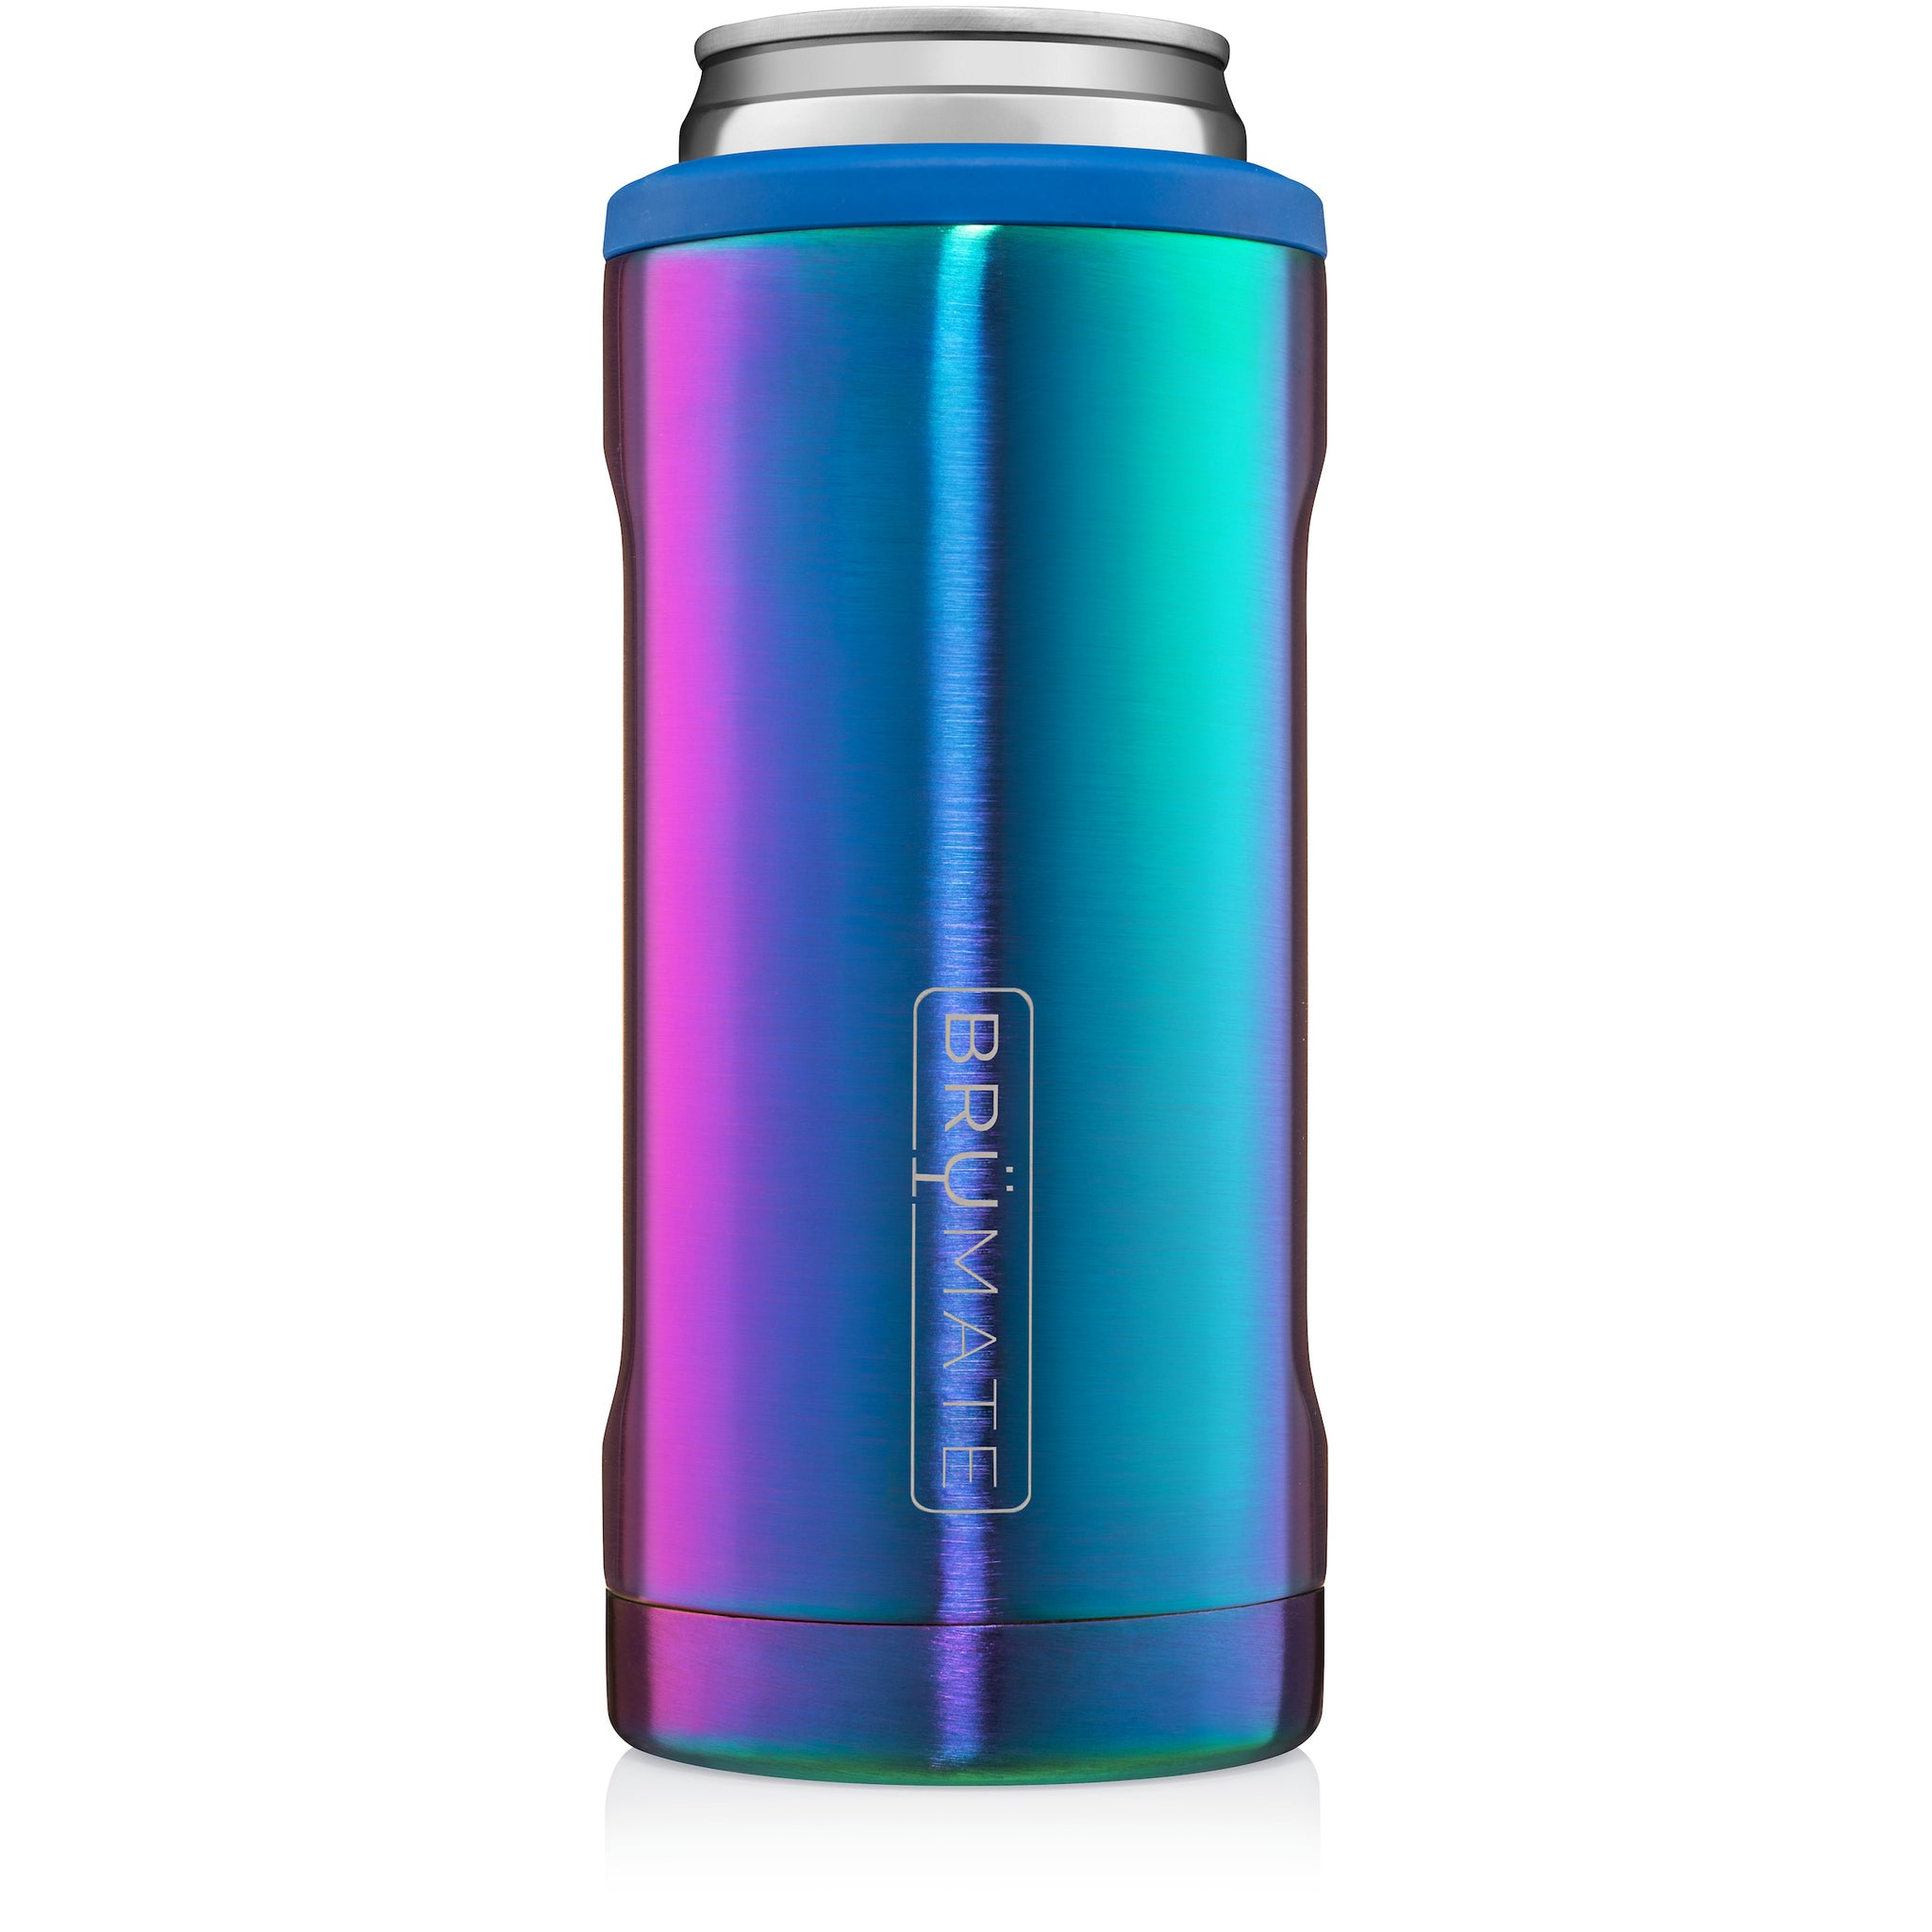 (PRE-ORDER, SHIPS 07/20) Hopsulator Slim | Rainbow Titanium (12oz slim cans) (LIMITED EDITION)